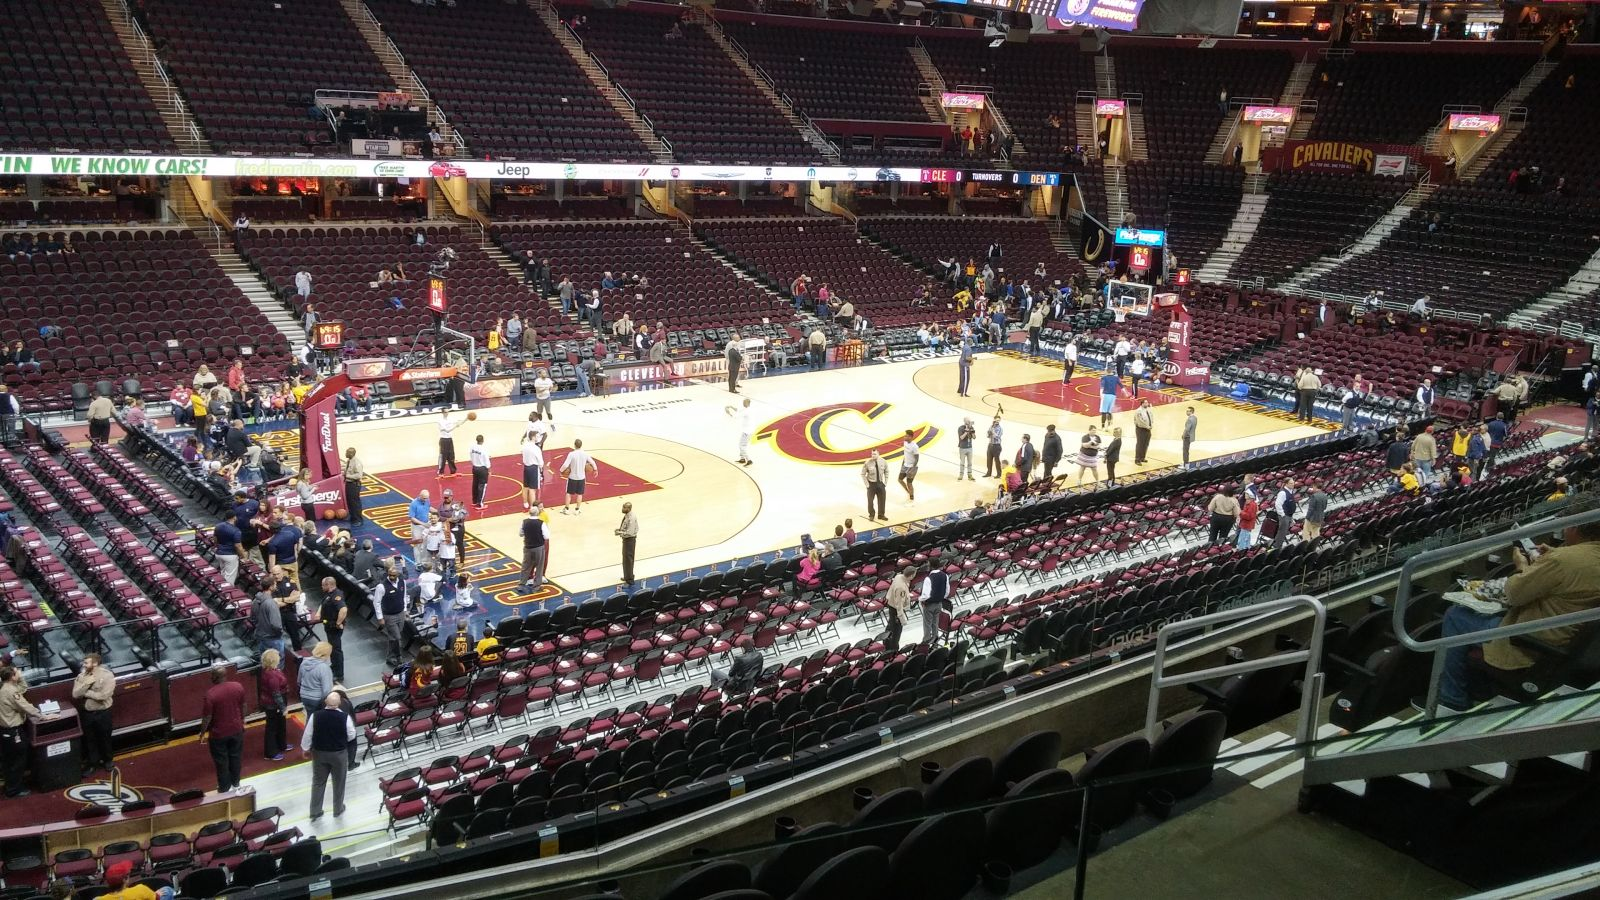 seat view for quicken loans arena section  row  . quicken loans arena section   cleveland cavaliers